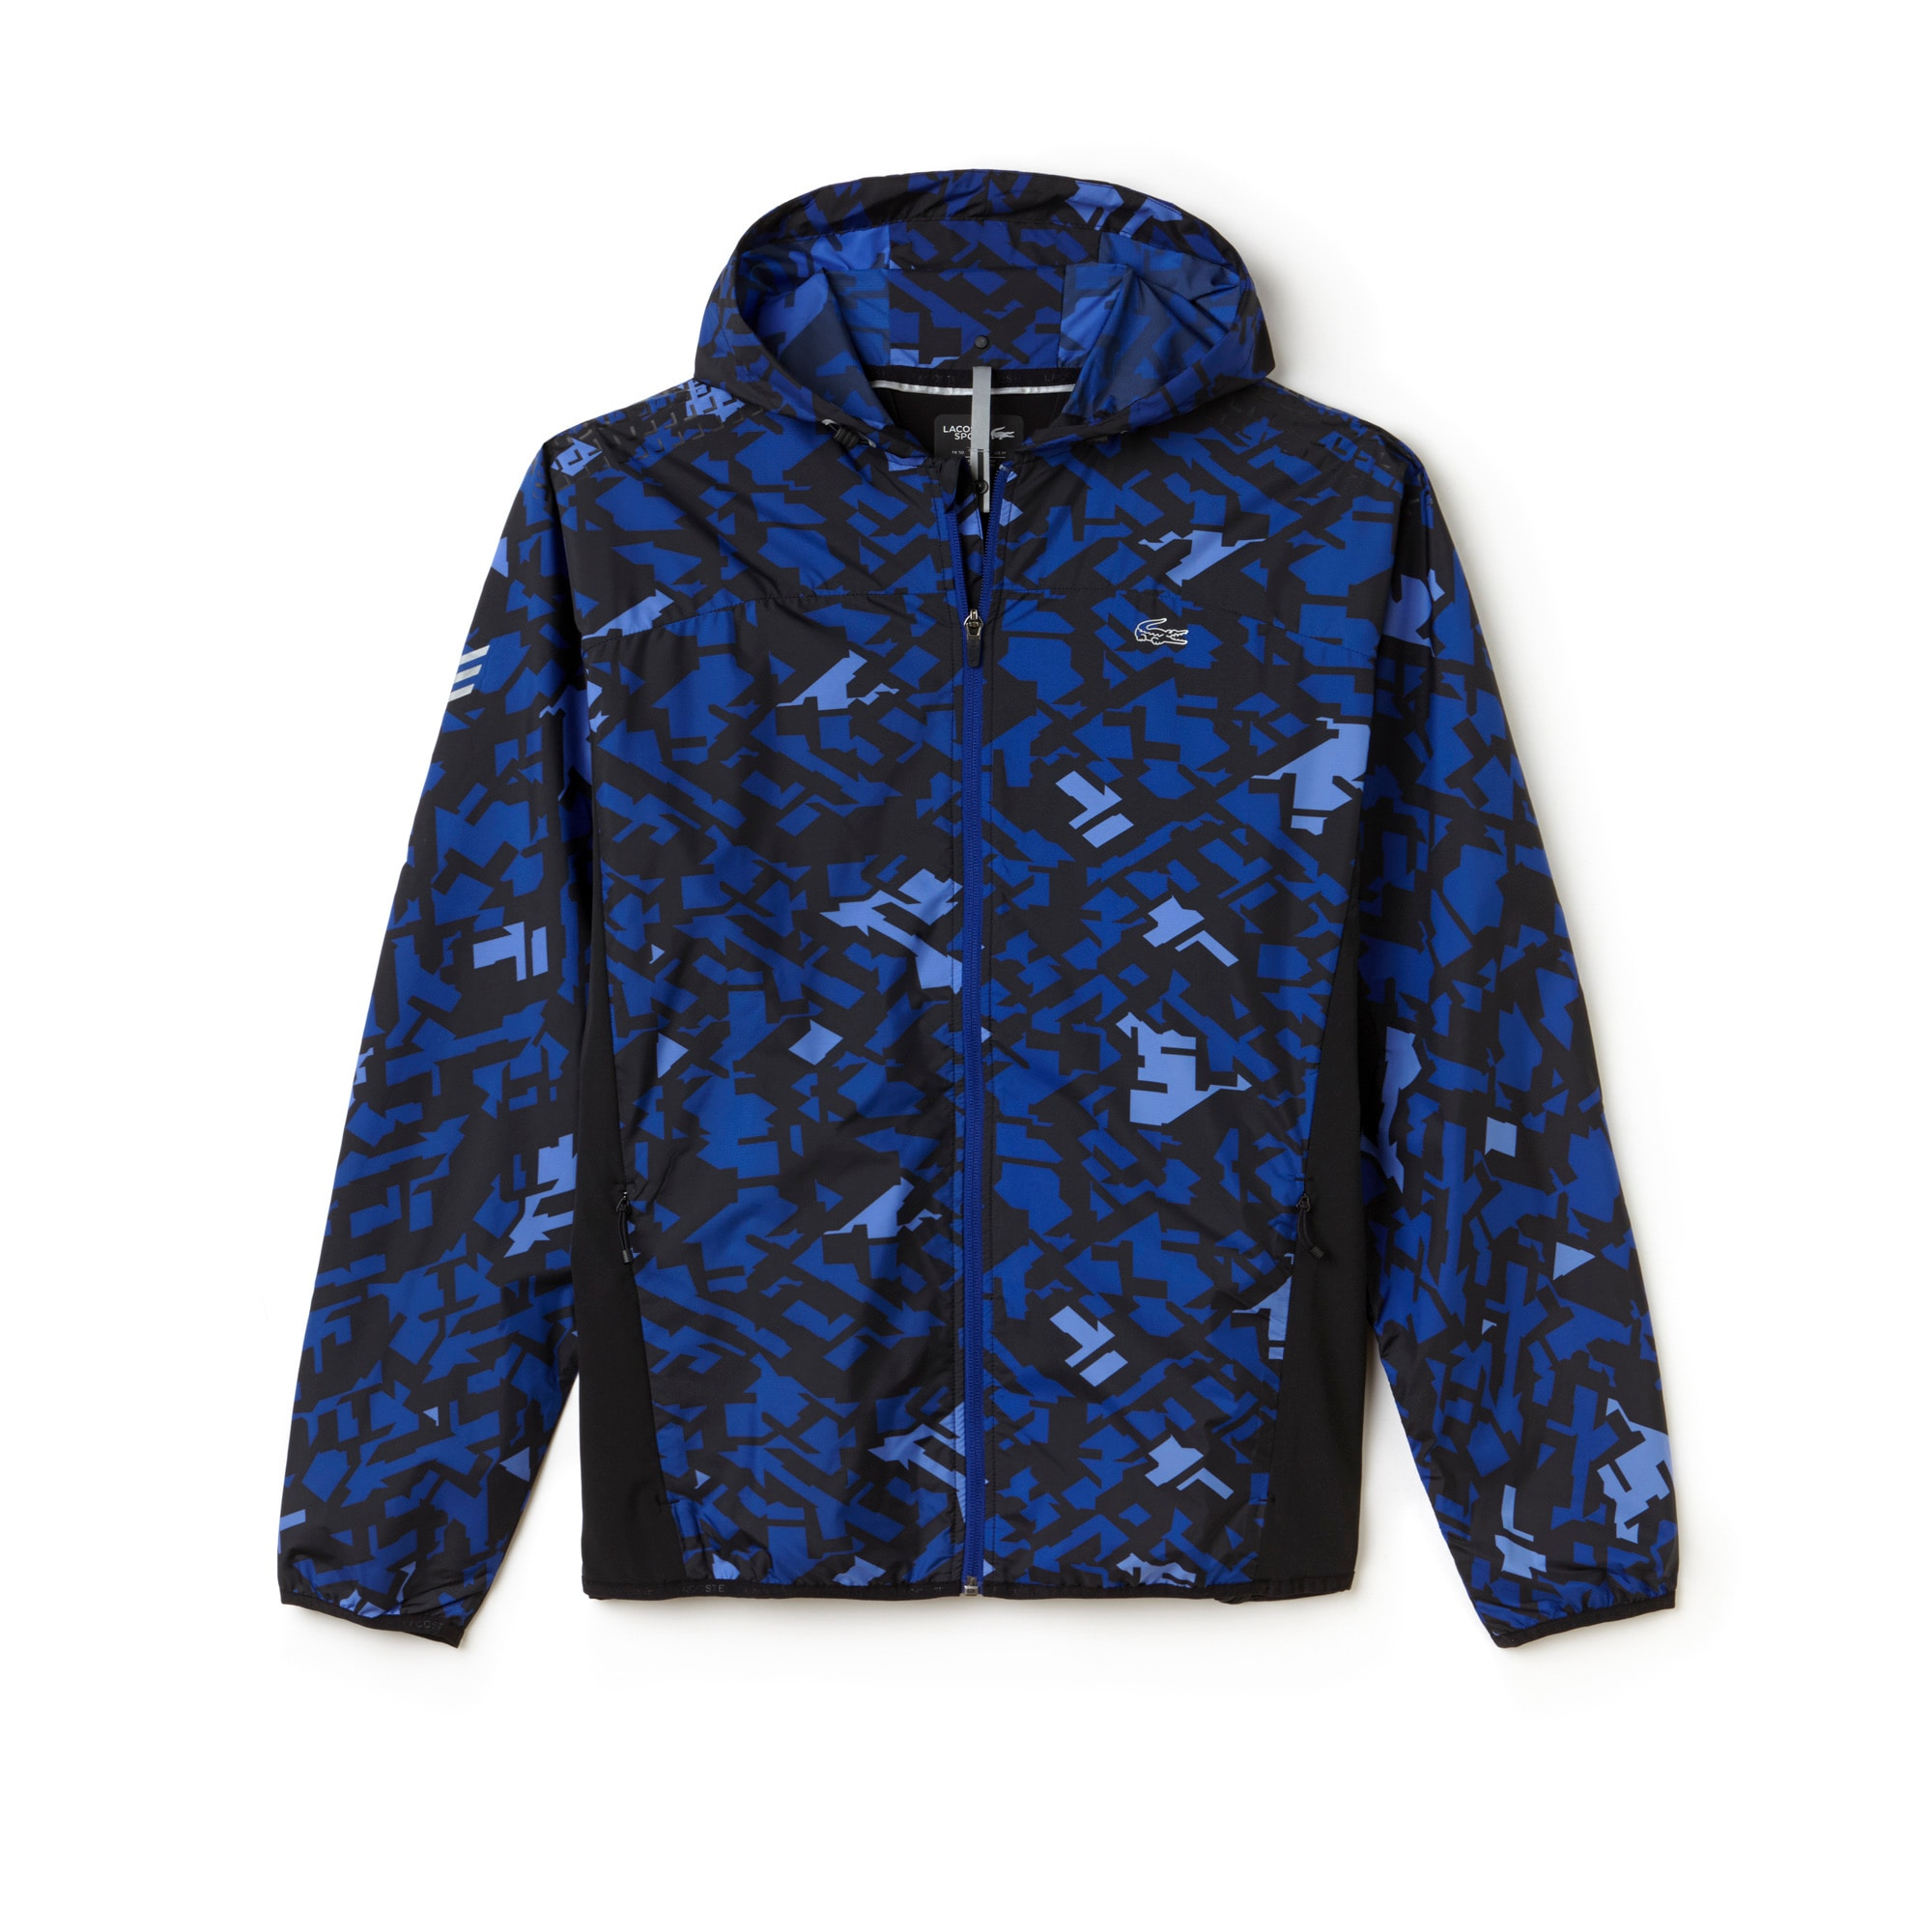 Men's SPORT Hooded Graphic Print Tennis Jacket